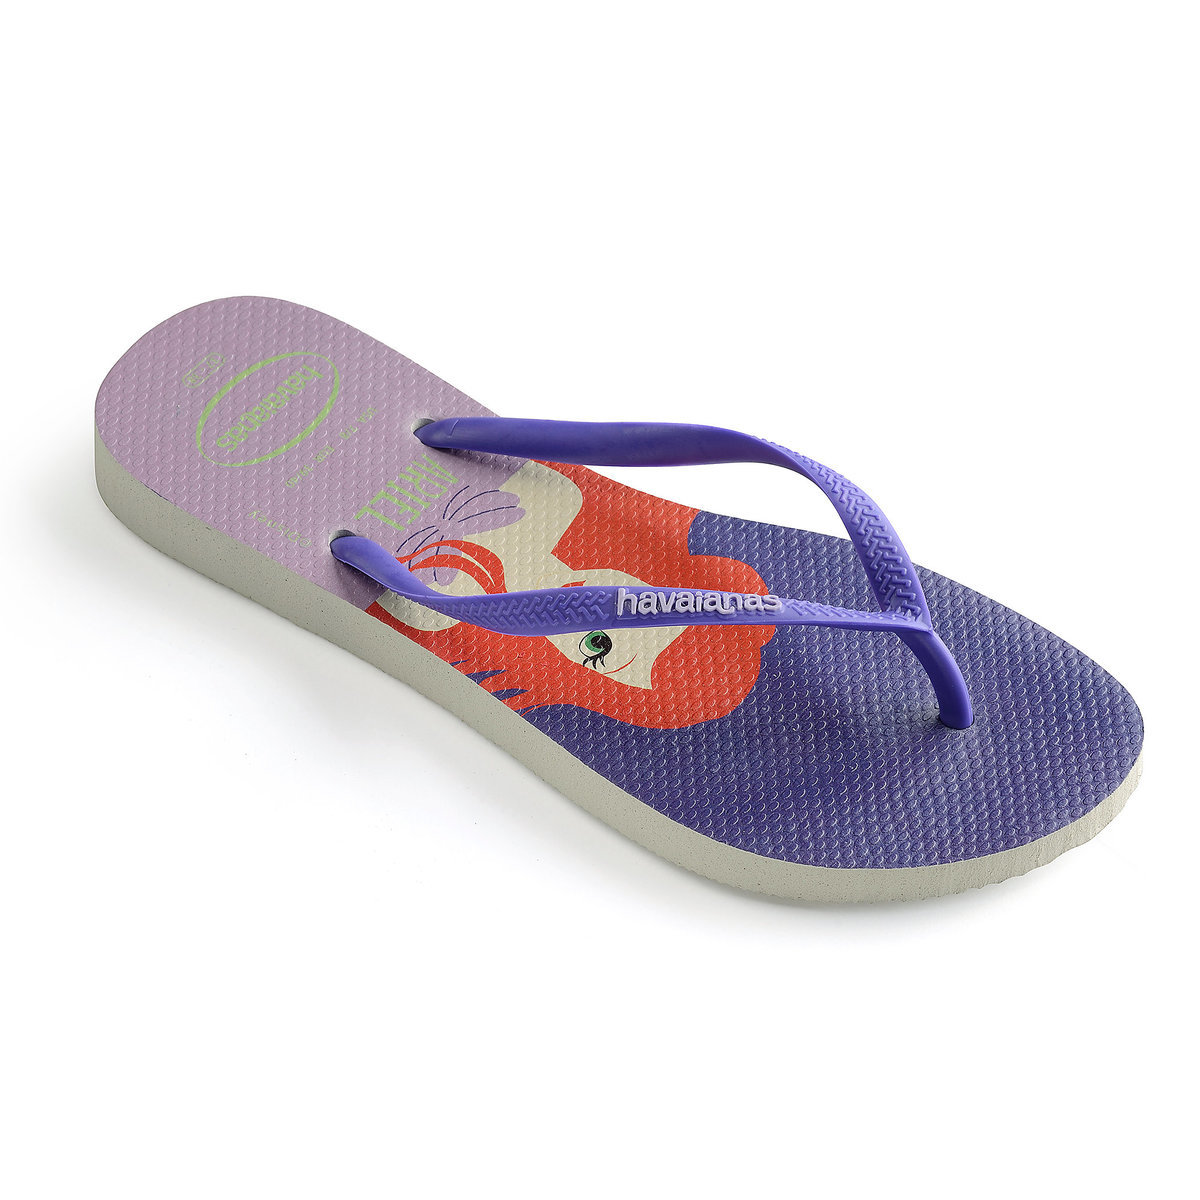 823b98e95 Product Image of Ariel Flip Flops for Women by Havaianas   1